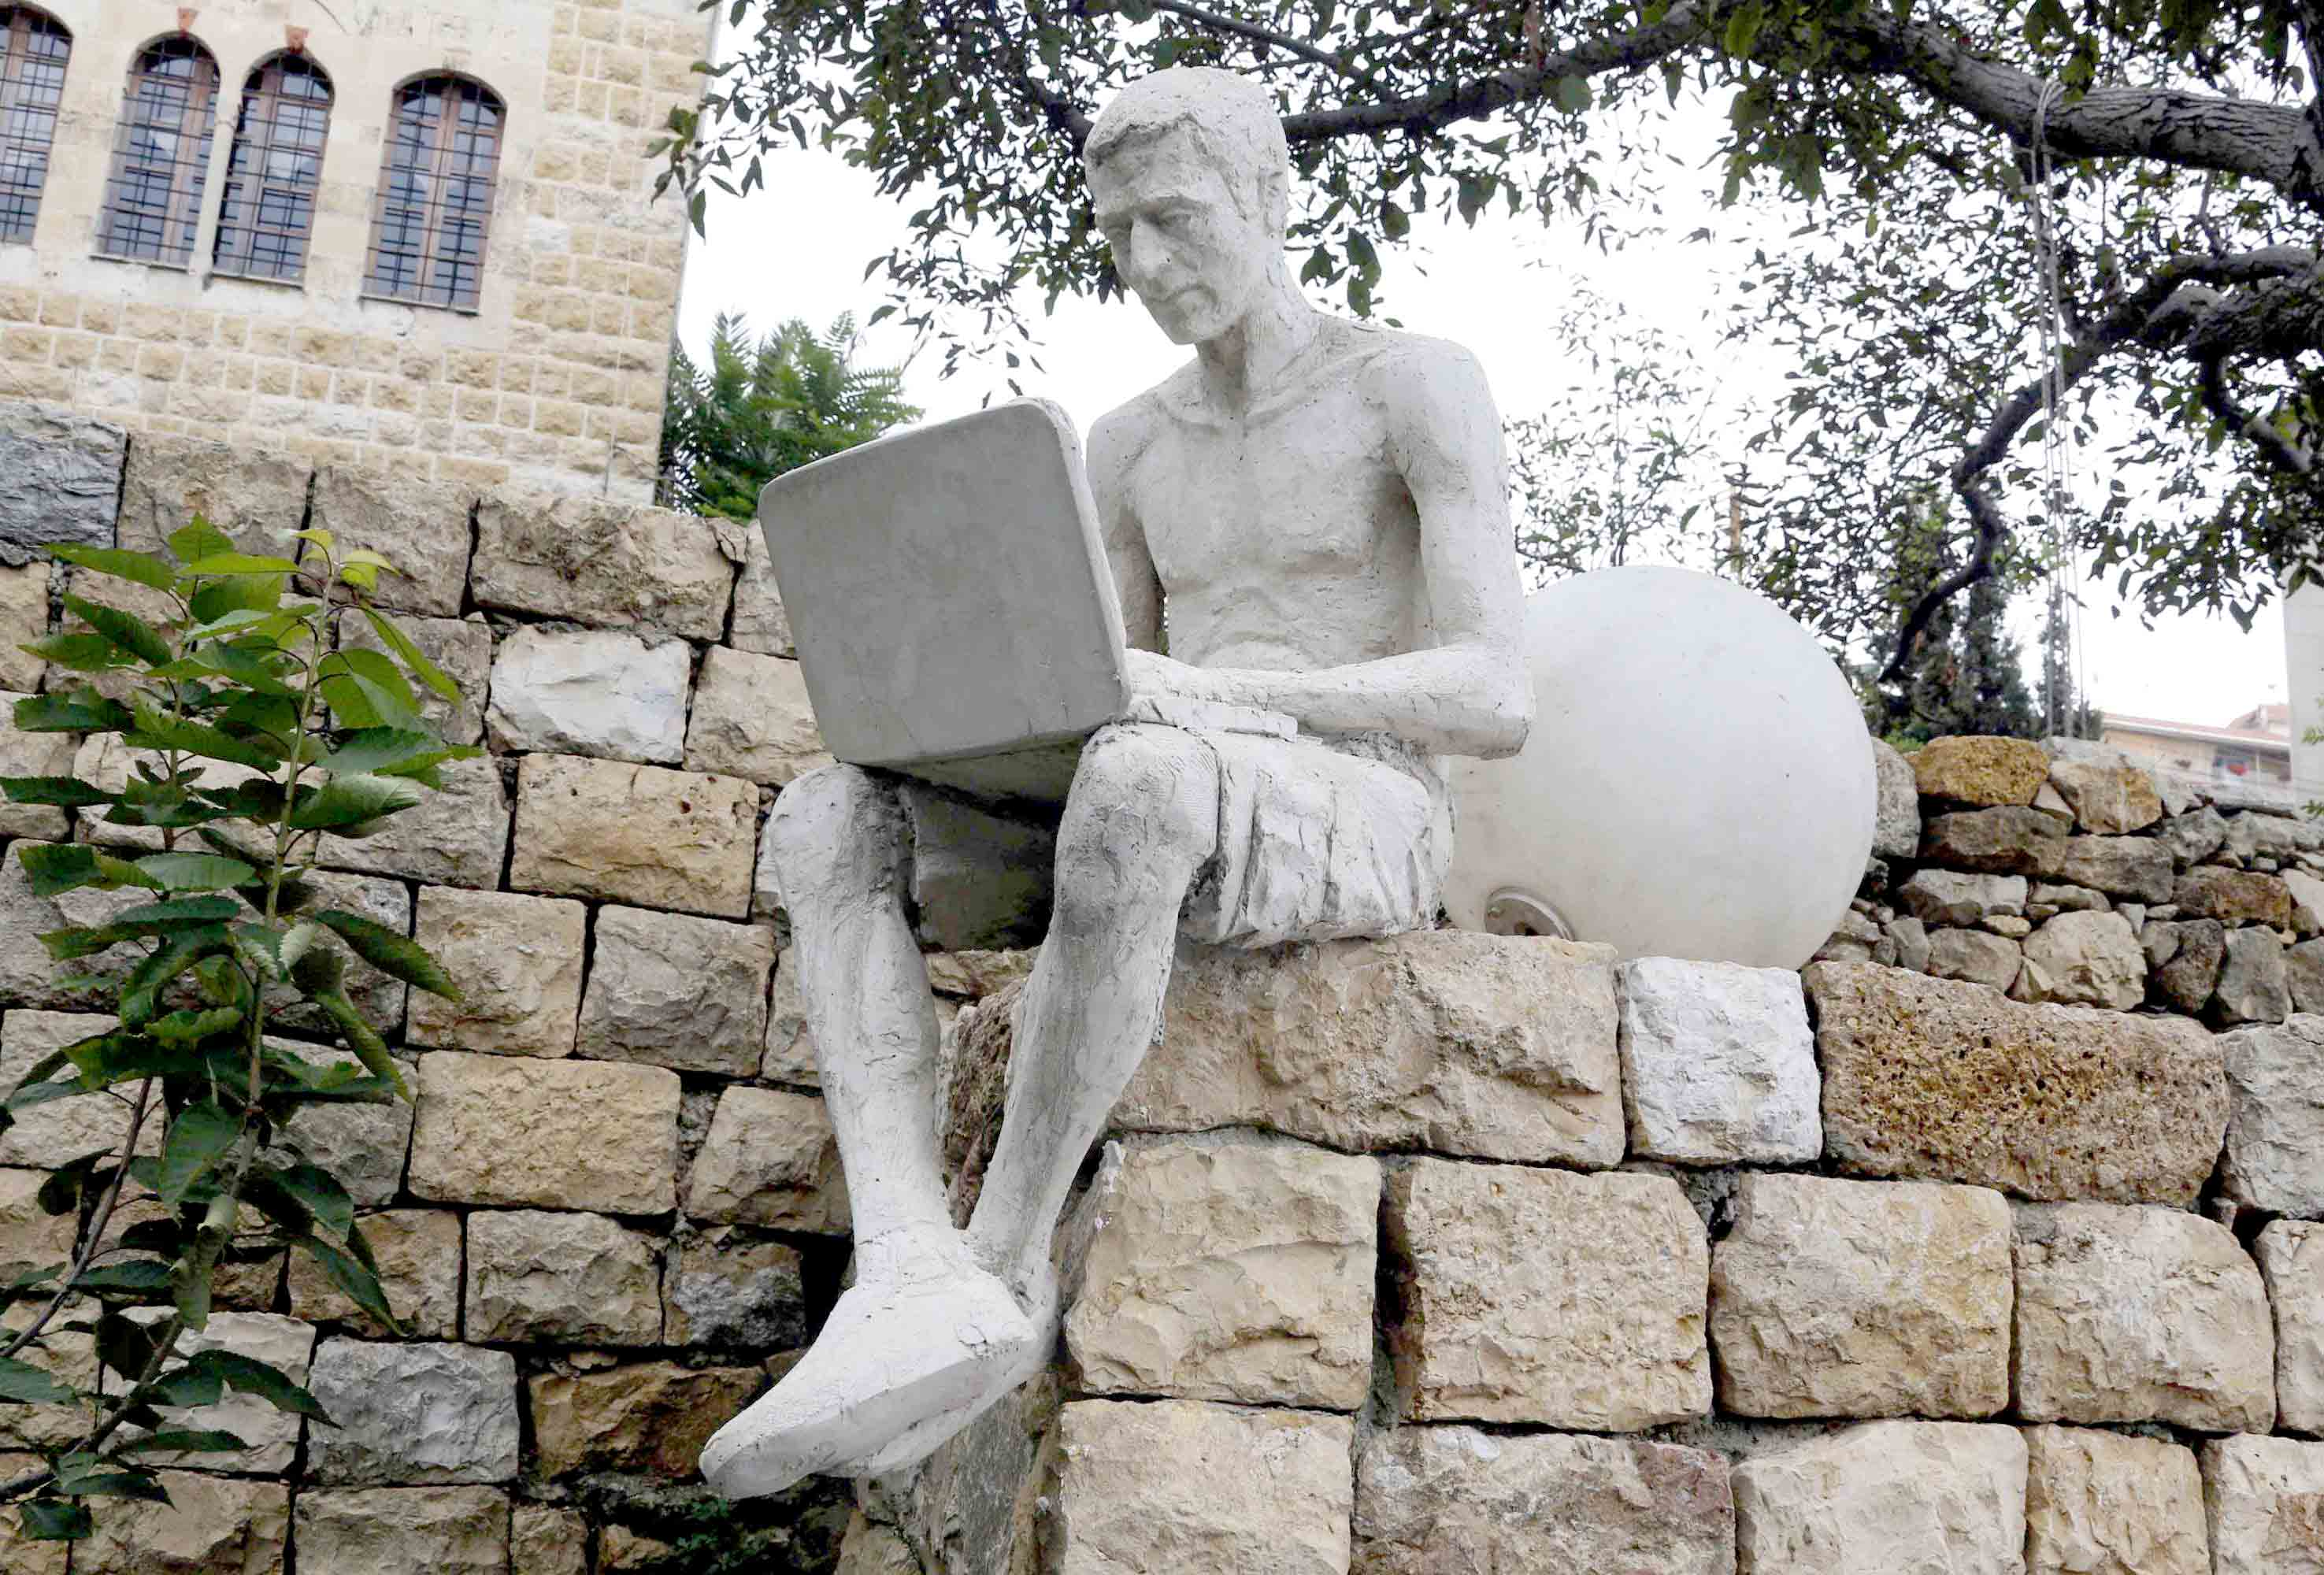 A sculpture of a man with a laptop by Syrian artist Wissam Muases at the Art Residency Aley in eastern Lebanon. (Reuters)